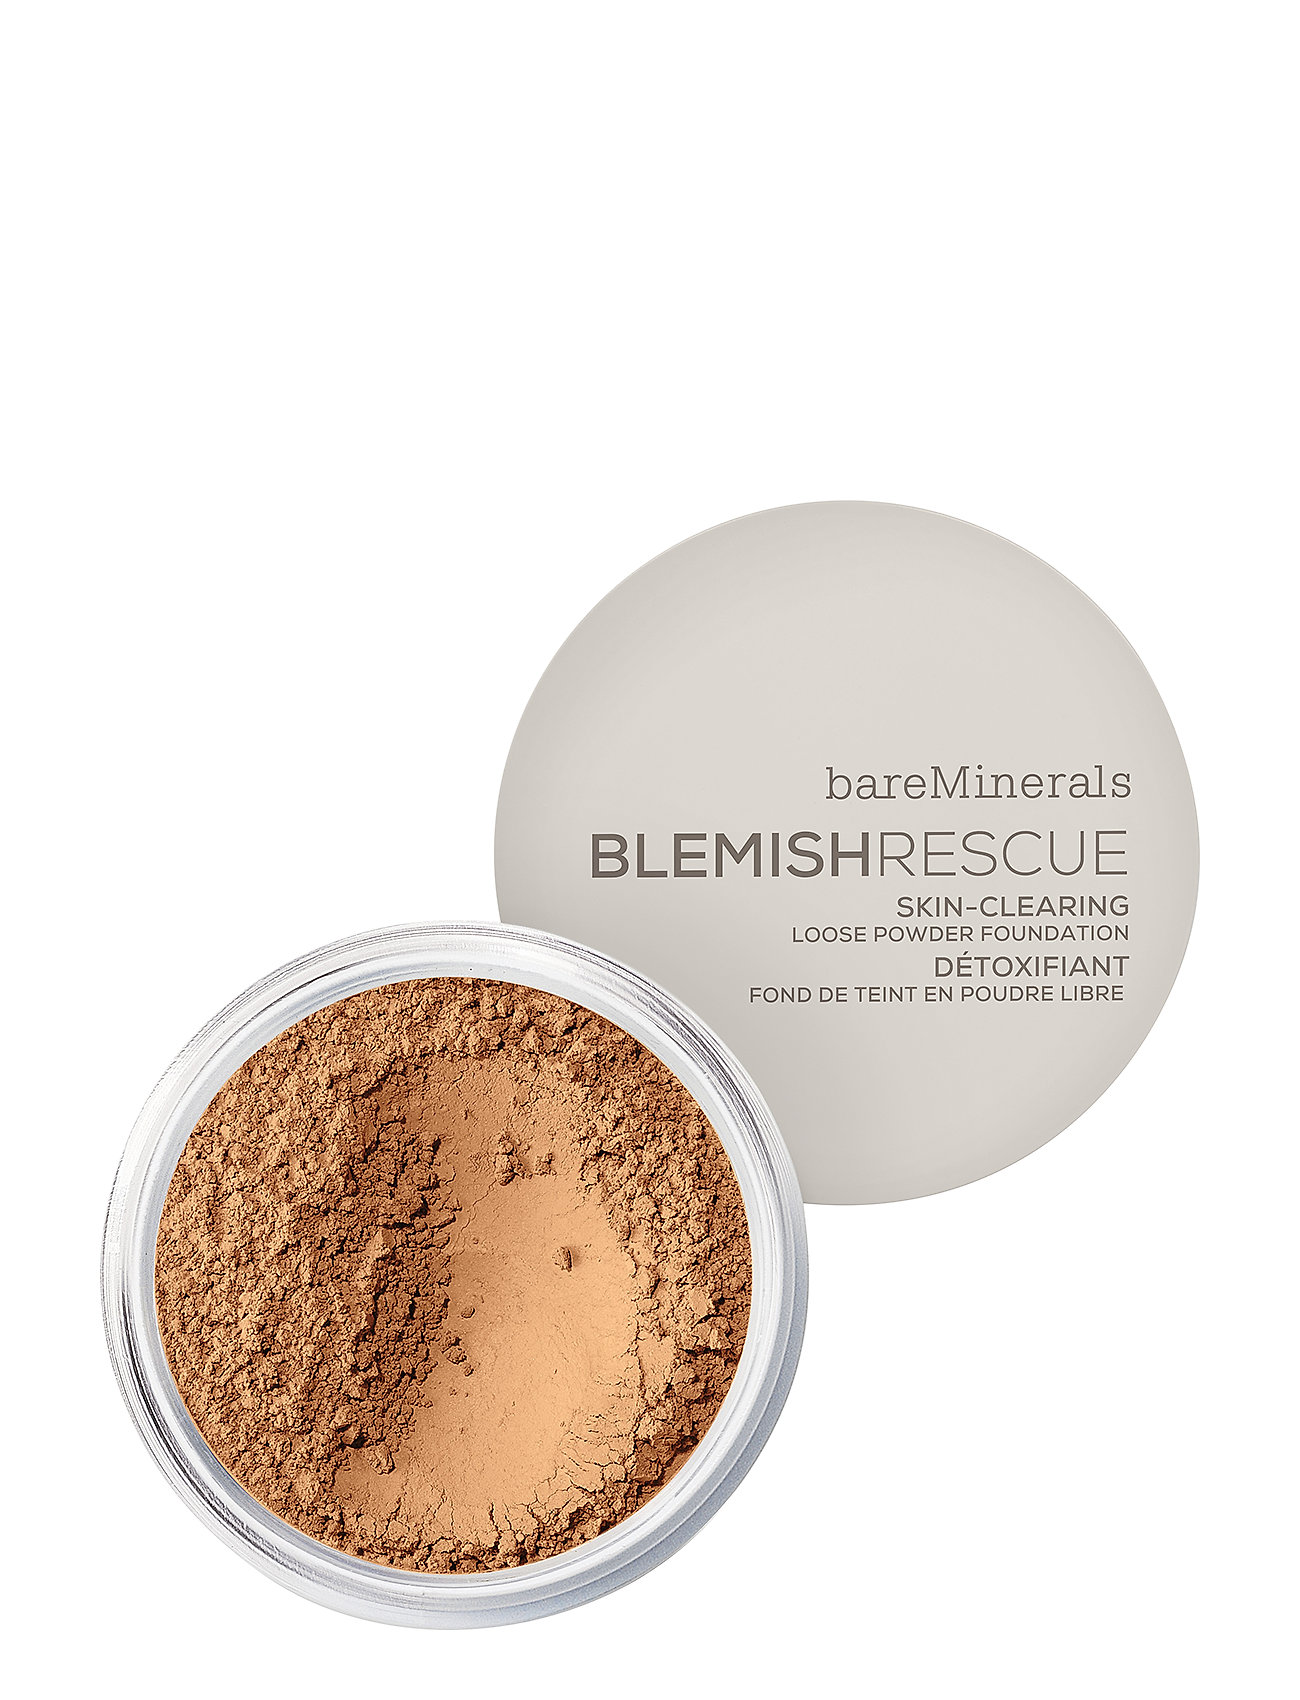 Image of Blemish Rescue Skin-Clearing Loose Powder Foundation Foundation Makeup BareMinerals (3330696189)